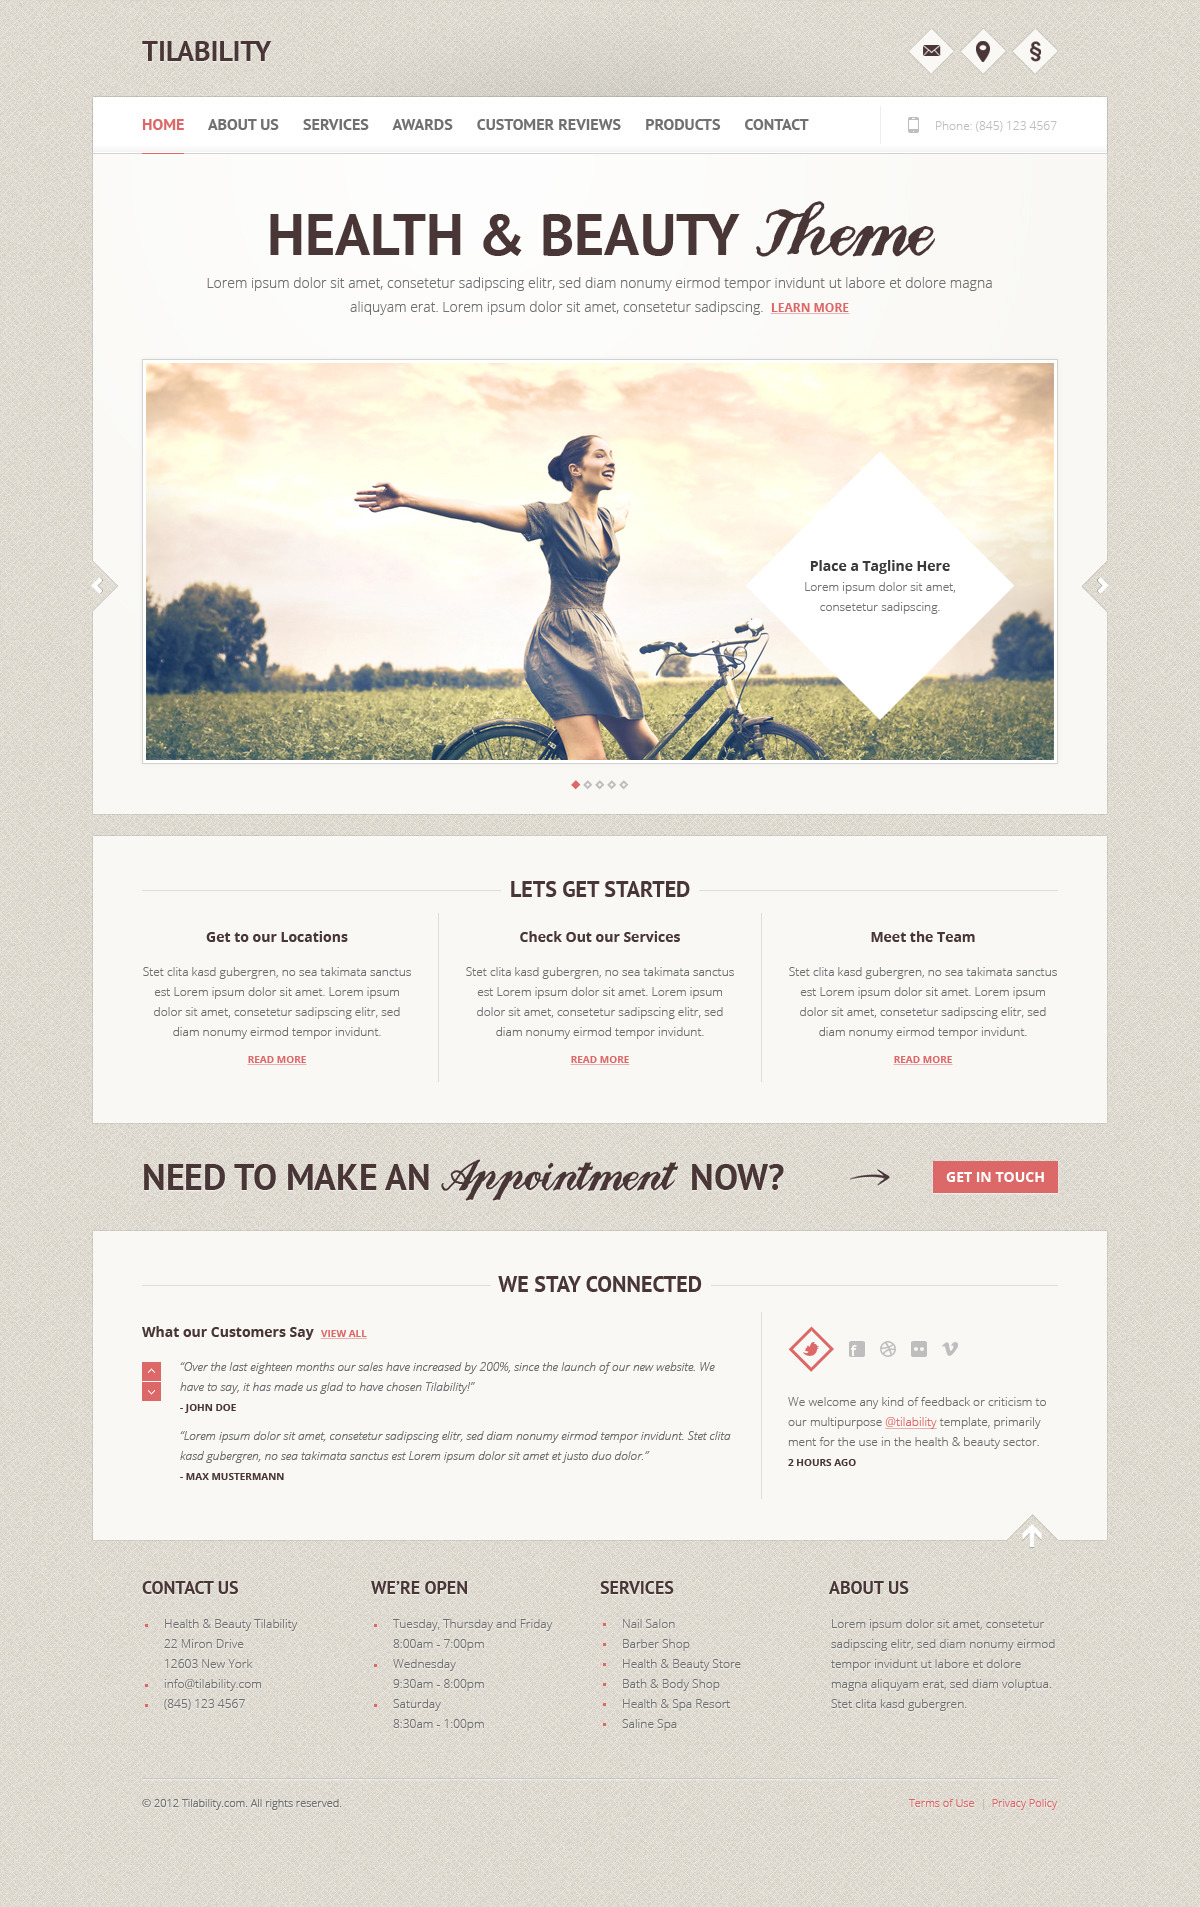 Tilability Health & Beauty xHTML/CSS Template